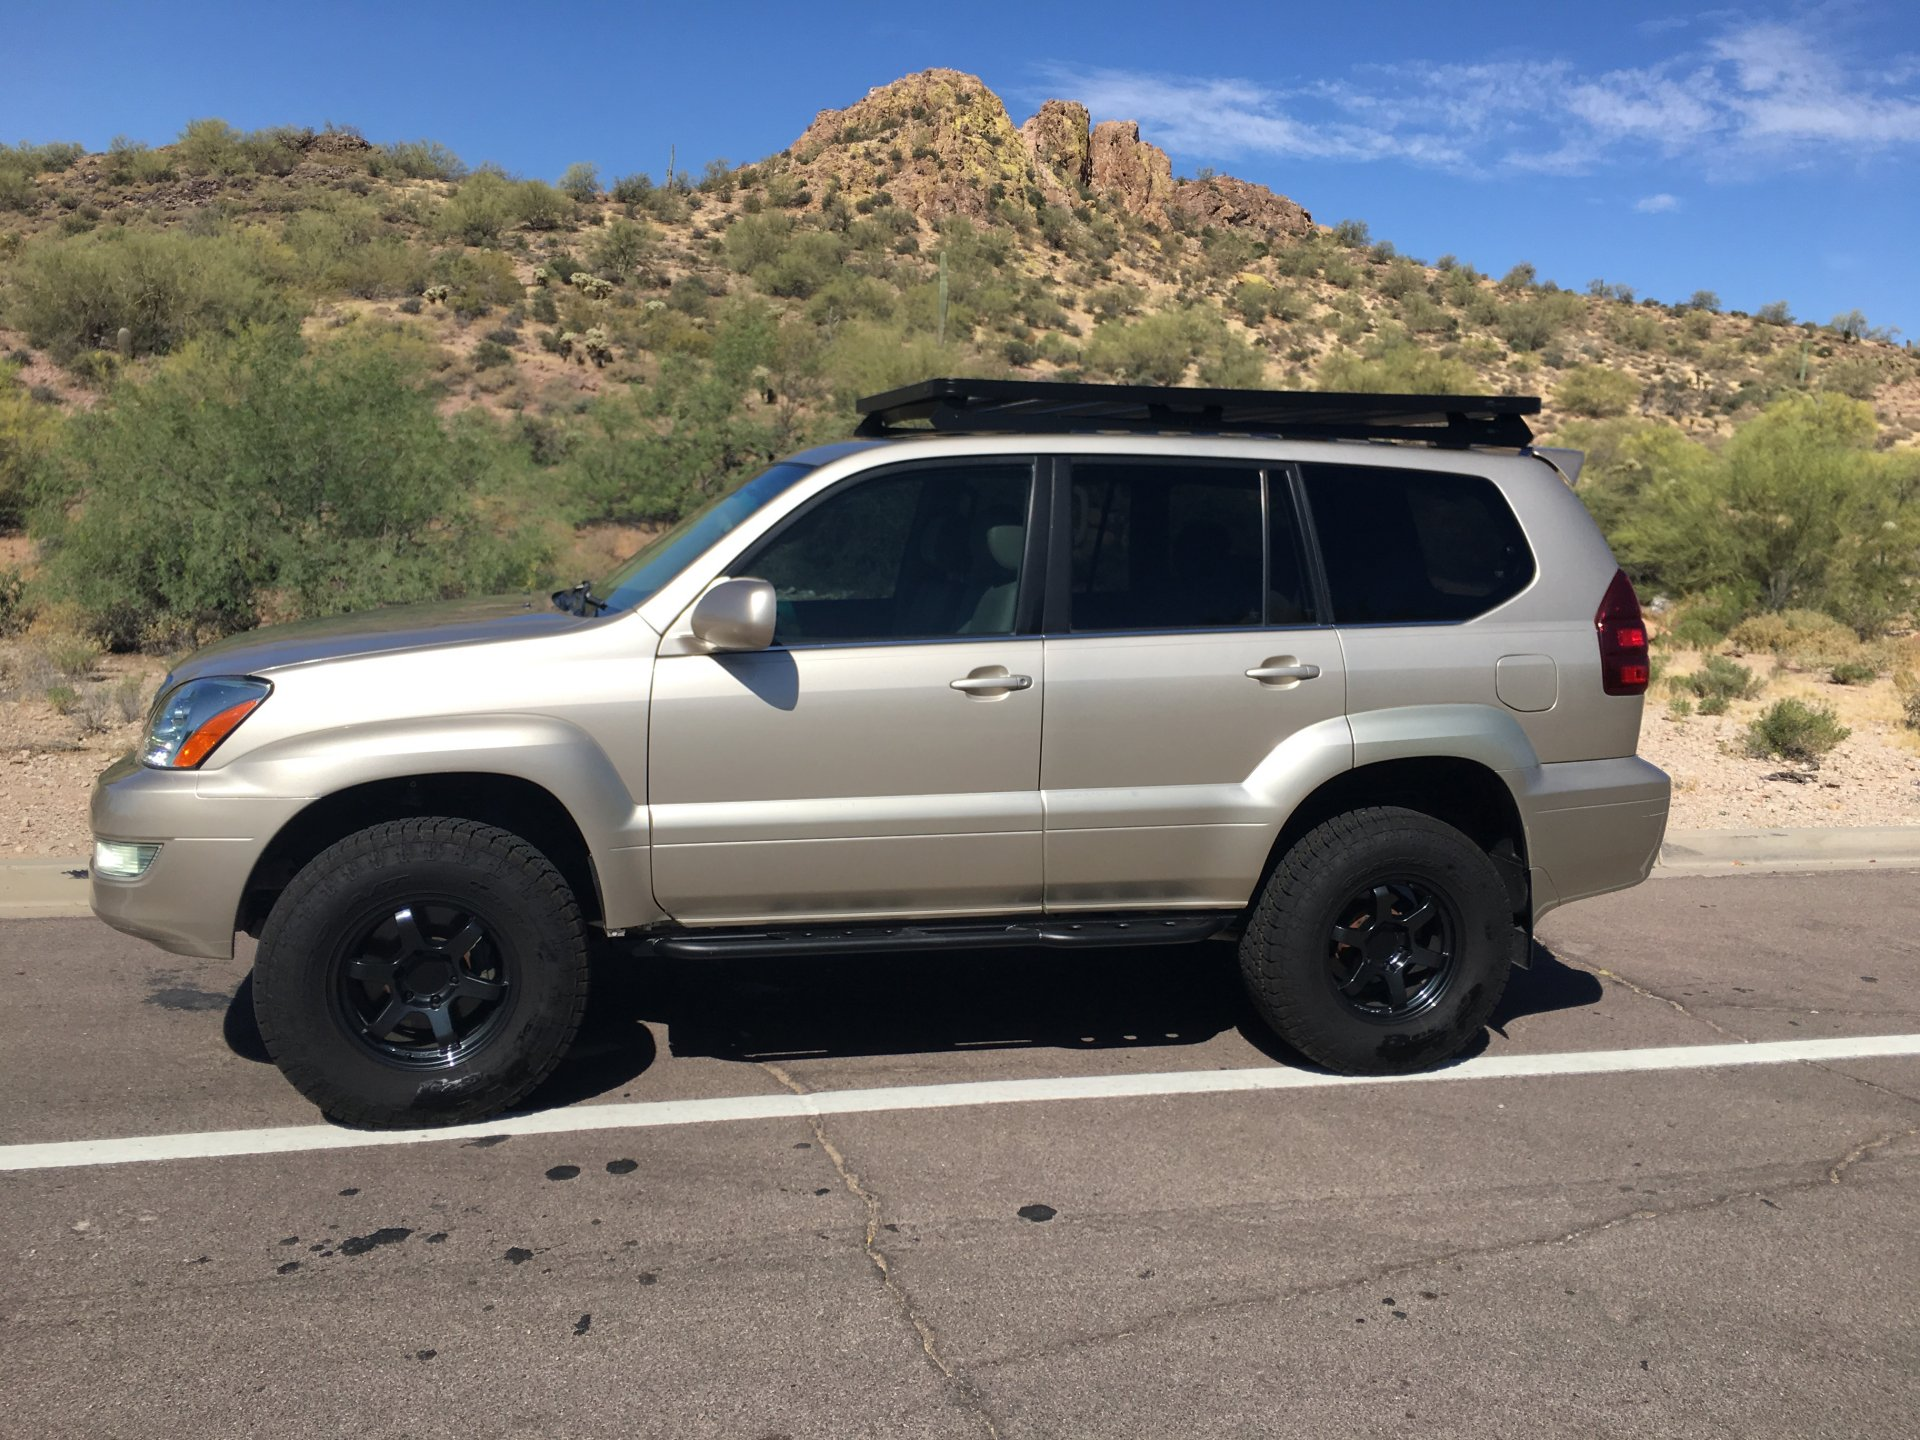 for sale 2006 gx470 phoenix az u s ih8mud forum. Black Bedroom Furniture Sets. Home Design Ideas